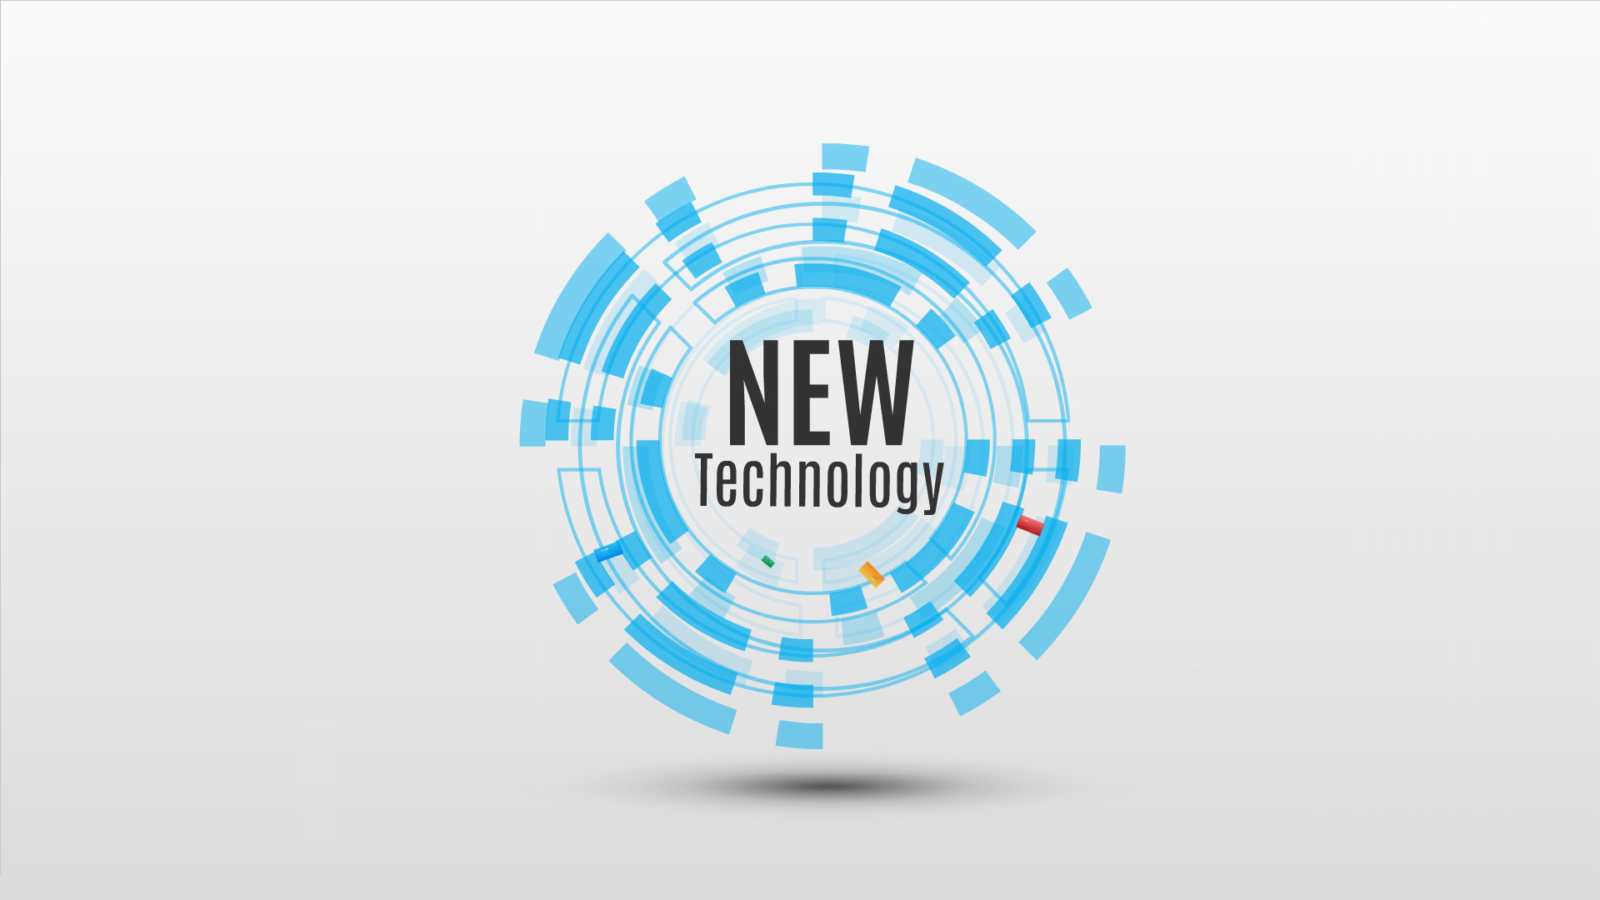 New Technology Prezi template with 3D